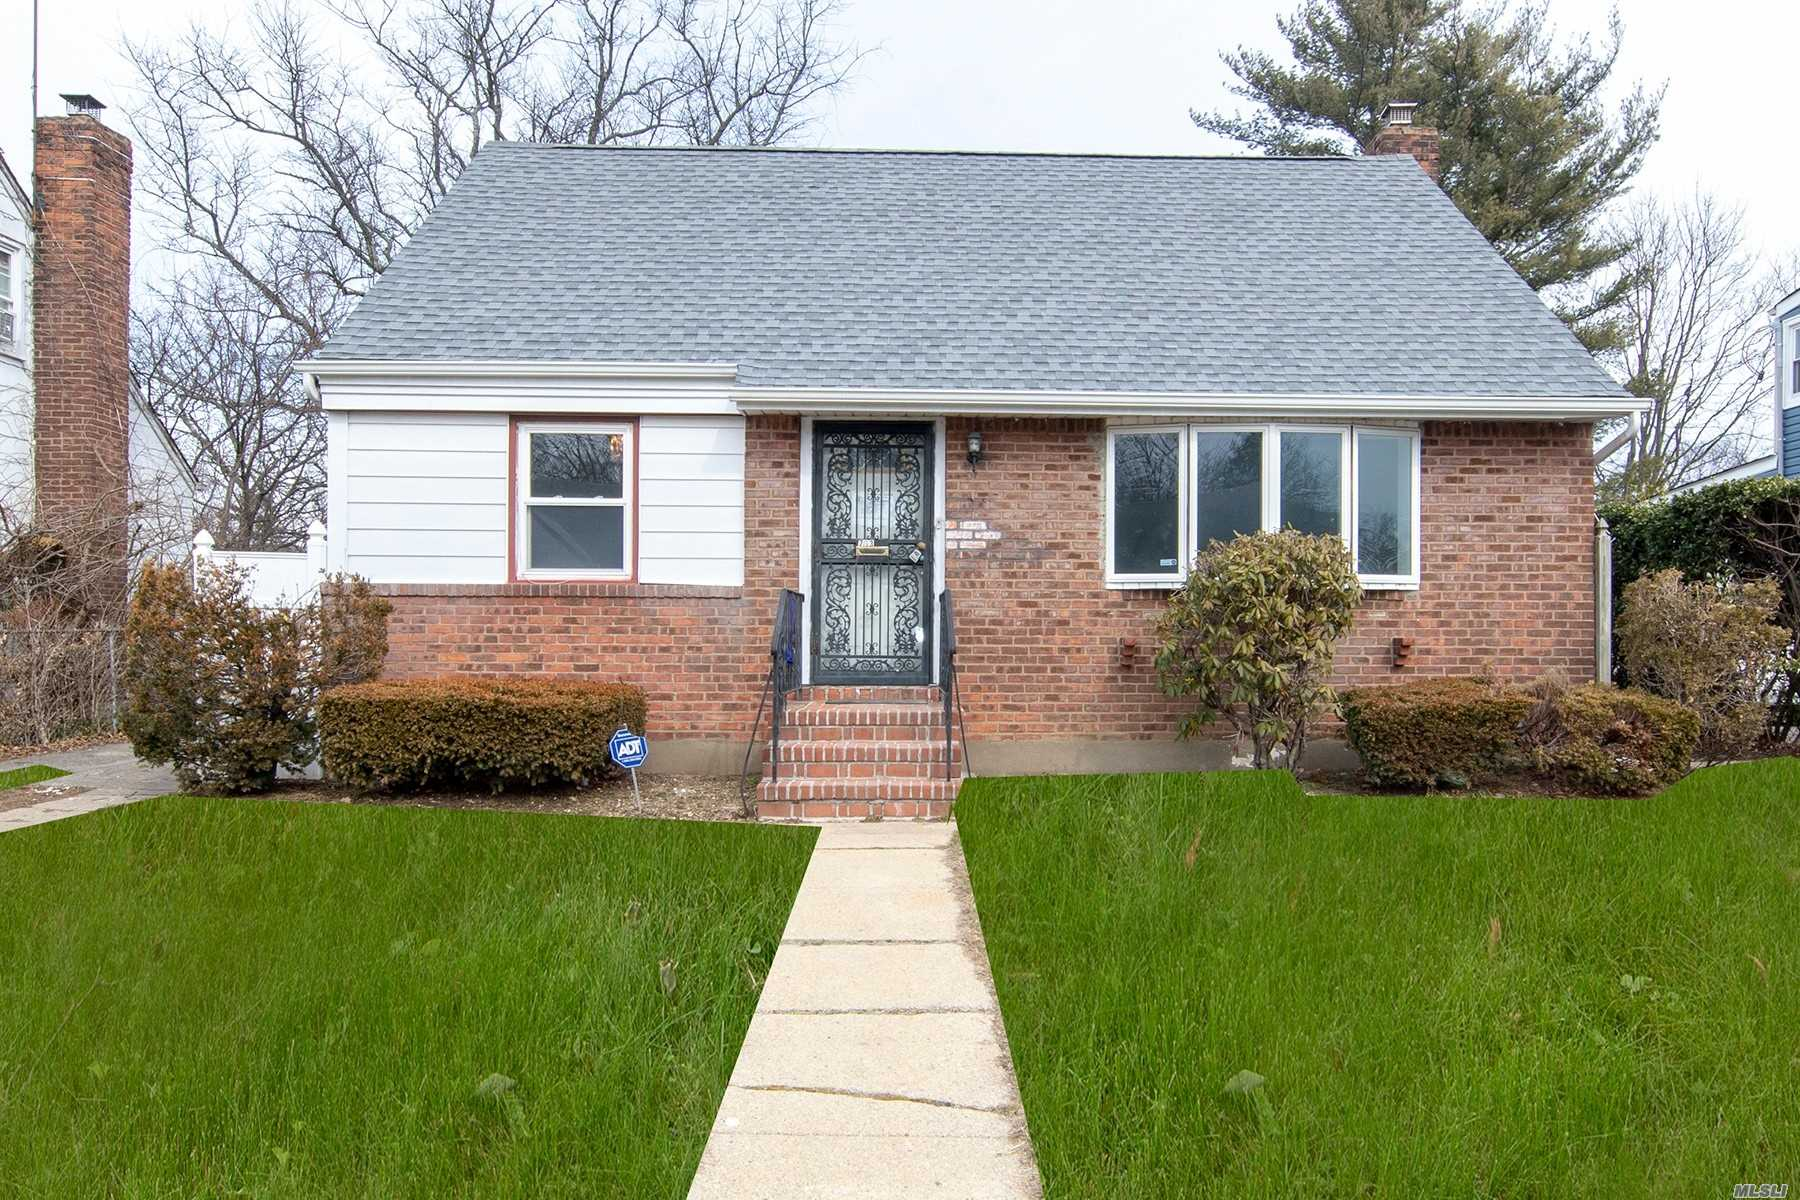 Renovated Home, New Kitchen, Freshly Done Hardwood Floors, Updated Bathroom, Formal Dining Room, Unfinished Basement. Near Public Transportation , And Shopping Centers..